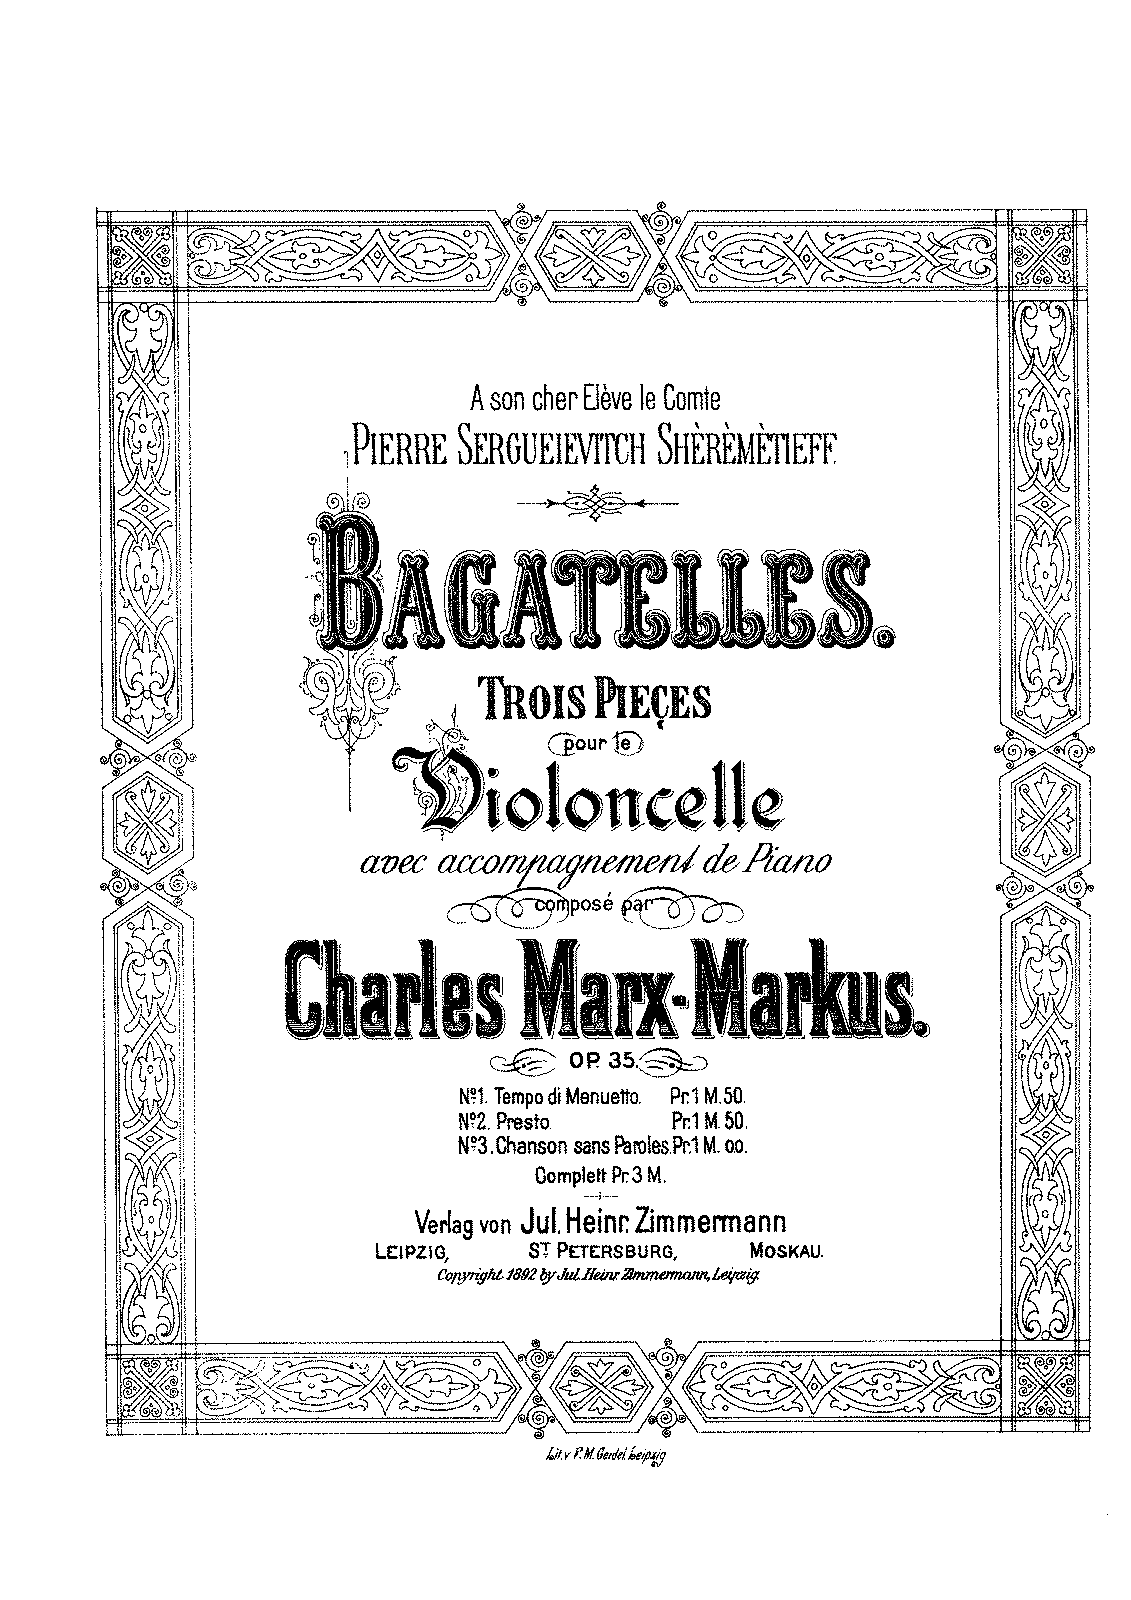 PMLP63516-Marx Markus 3 Bagatelles Op.35 Cello Piano.pdf